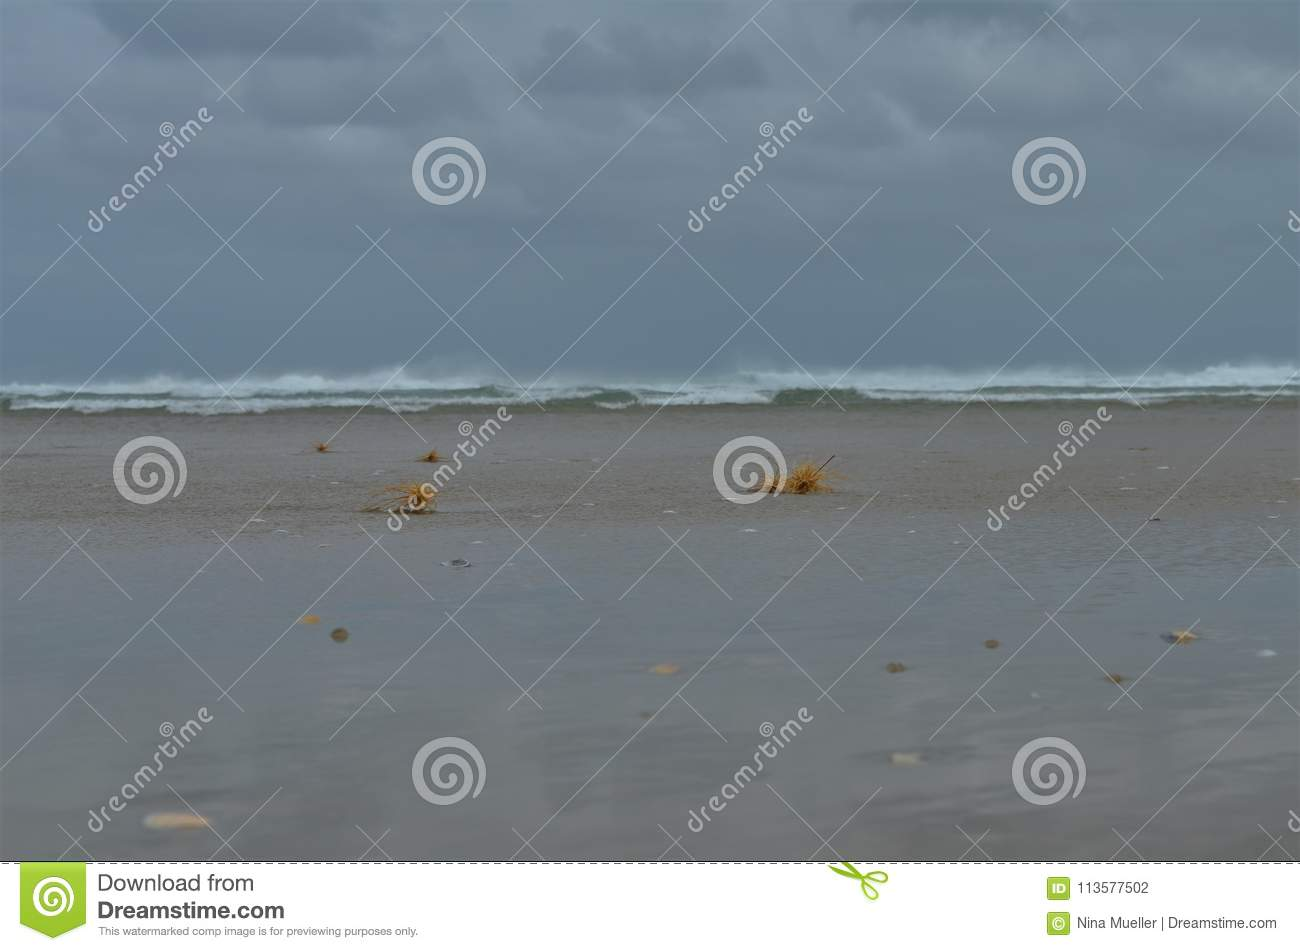 Beach from ground perspective during stormy weather and rough sea